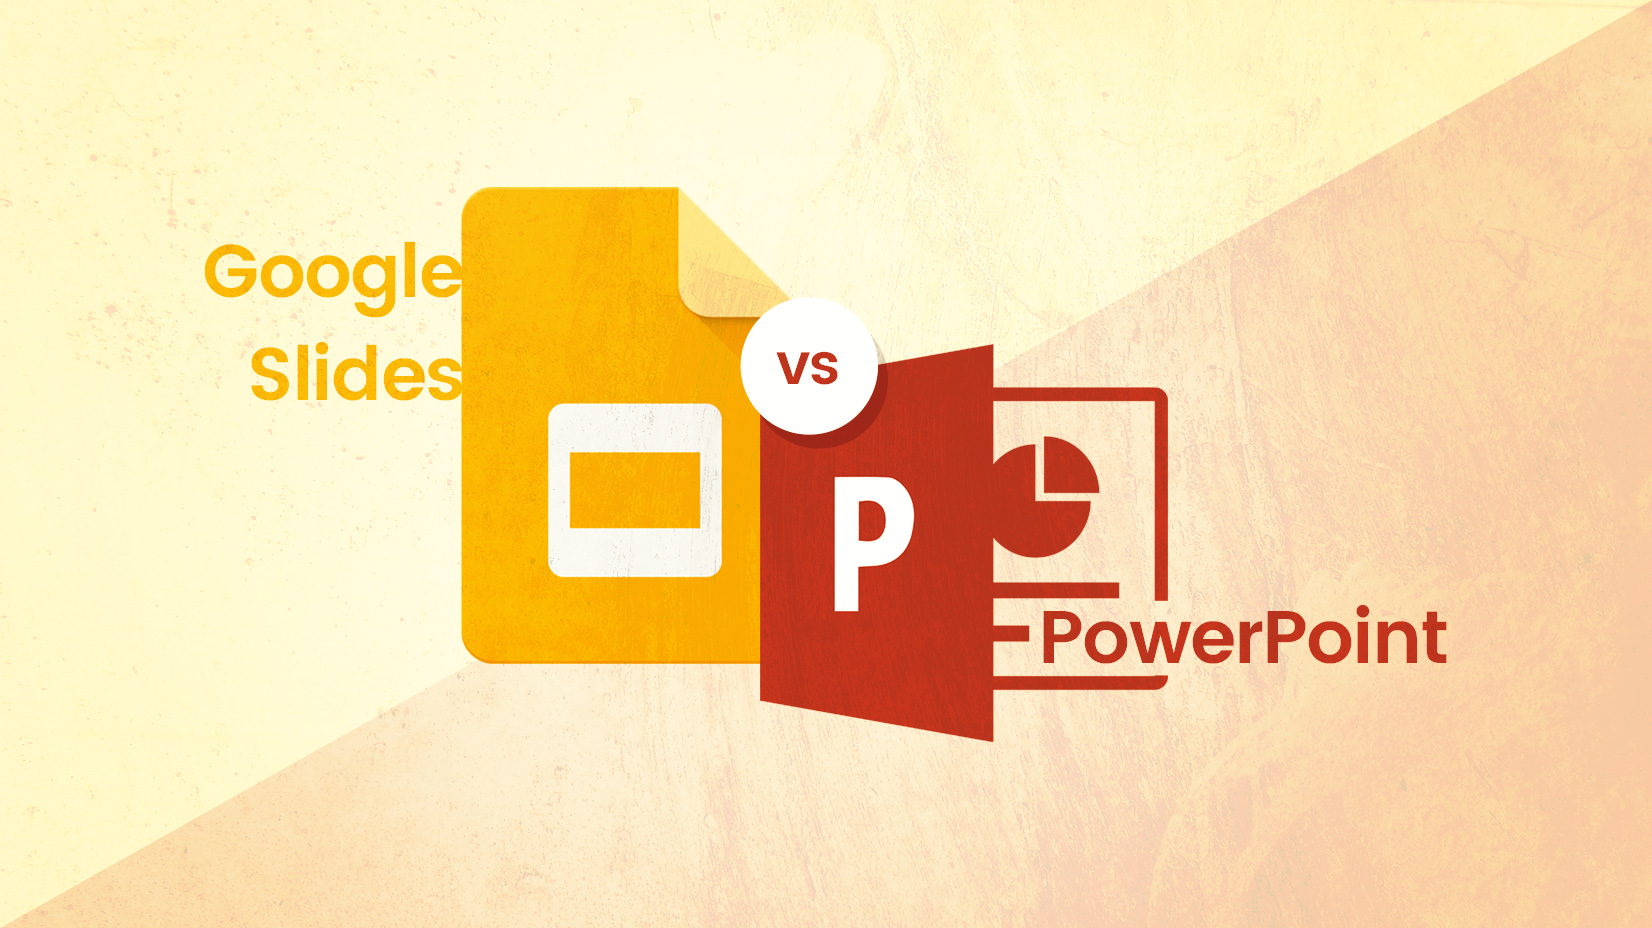 Google Slides vs PowerPoint: a Battle (Not) Worthy of Fighting